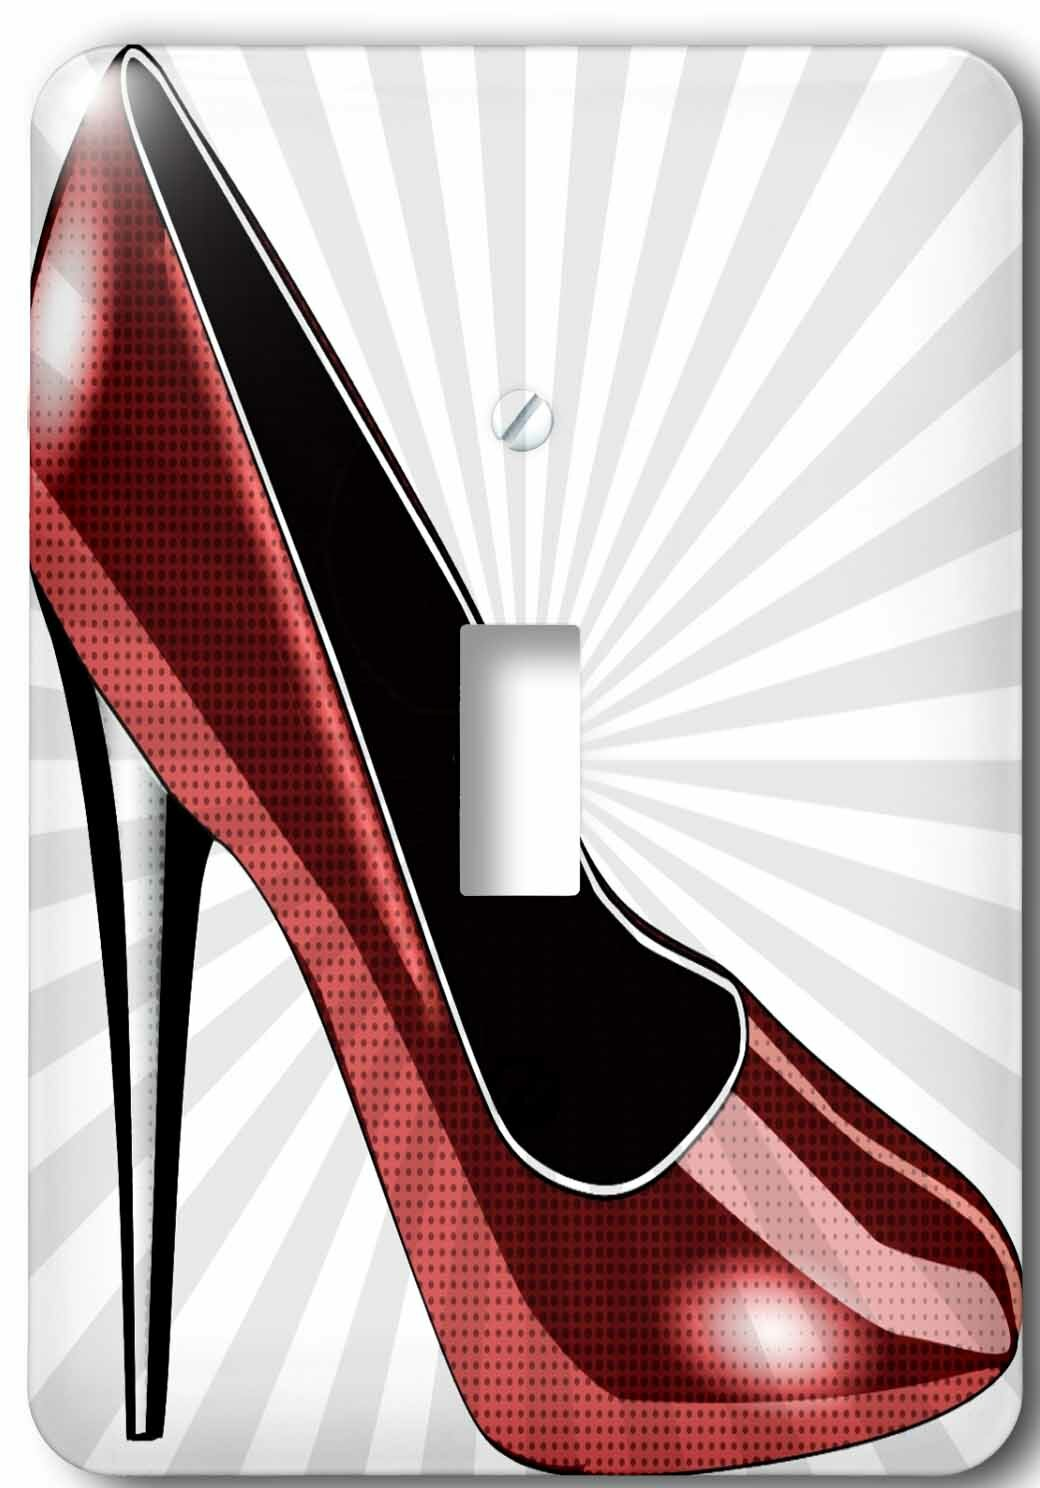 3drose High Heel Fashion Shoes 1 Gang Toggle Light Switch Wall Plate Wayfair